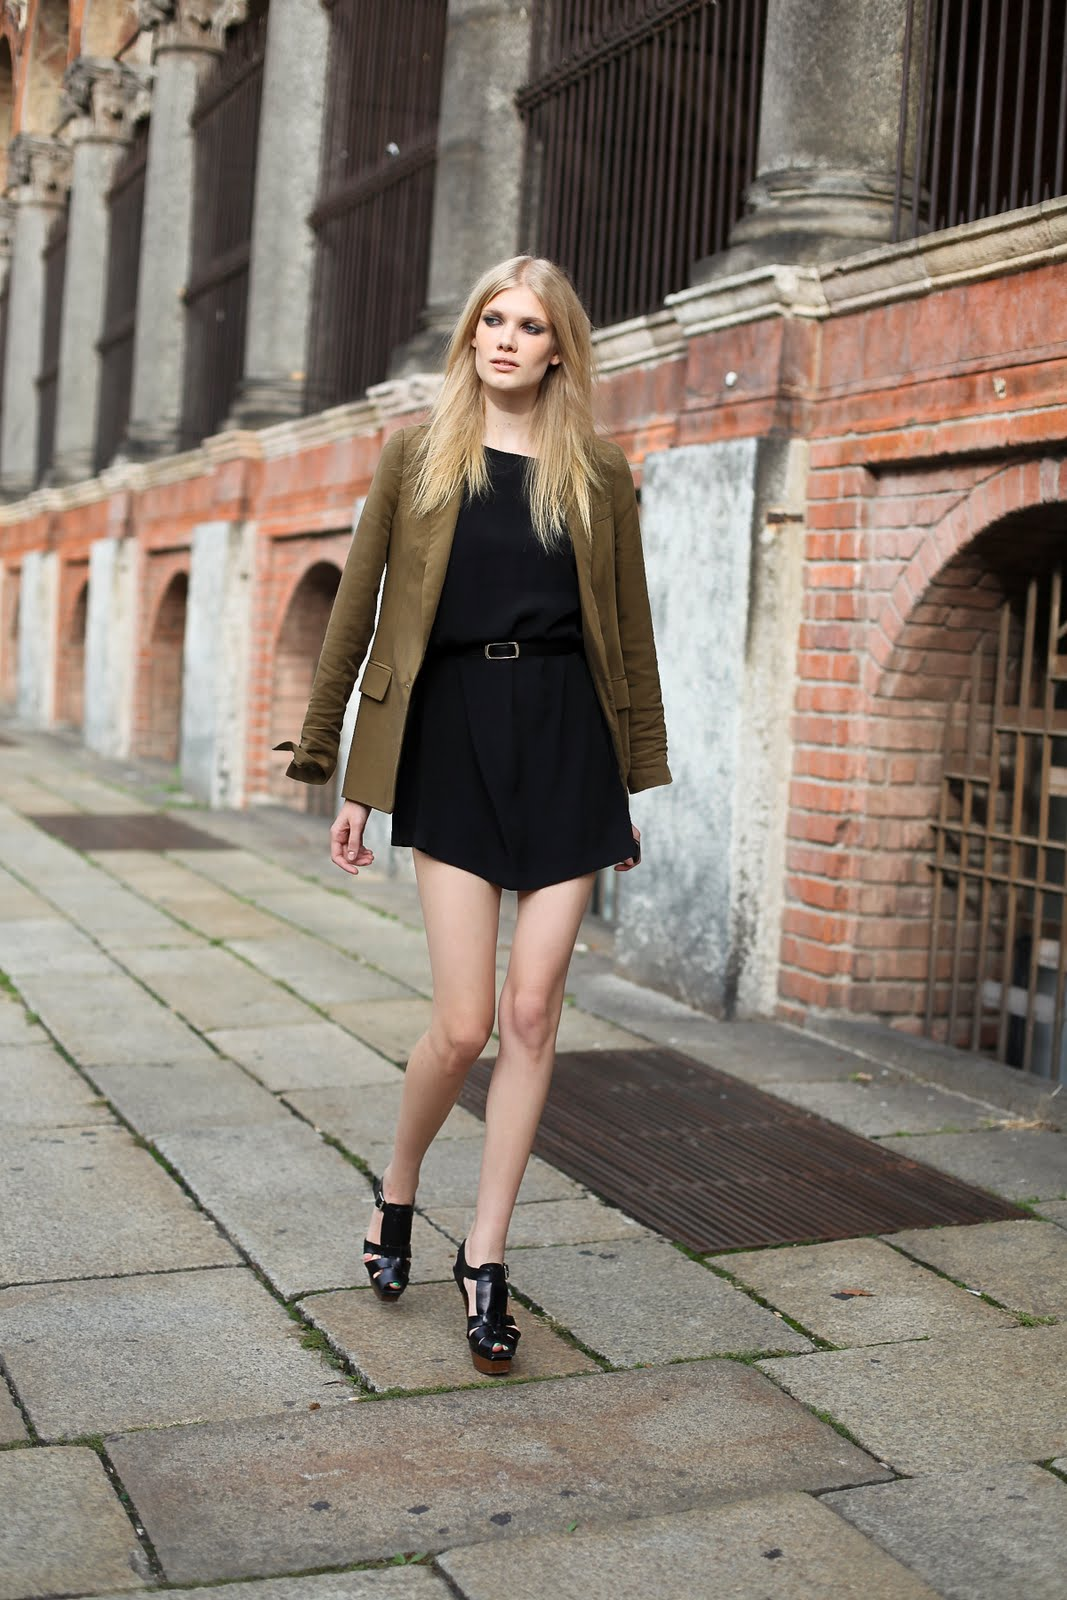 Just Another Fashion Blog By Lisa Dengler Model Street Style Just Another Fashion Blog